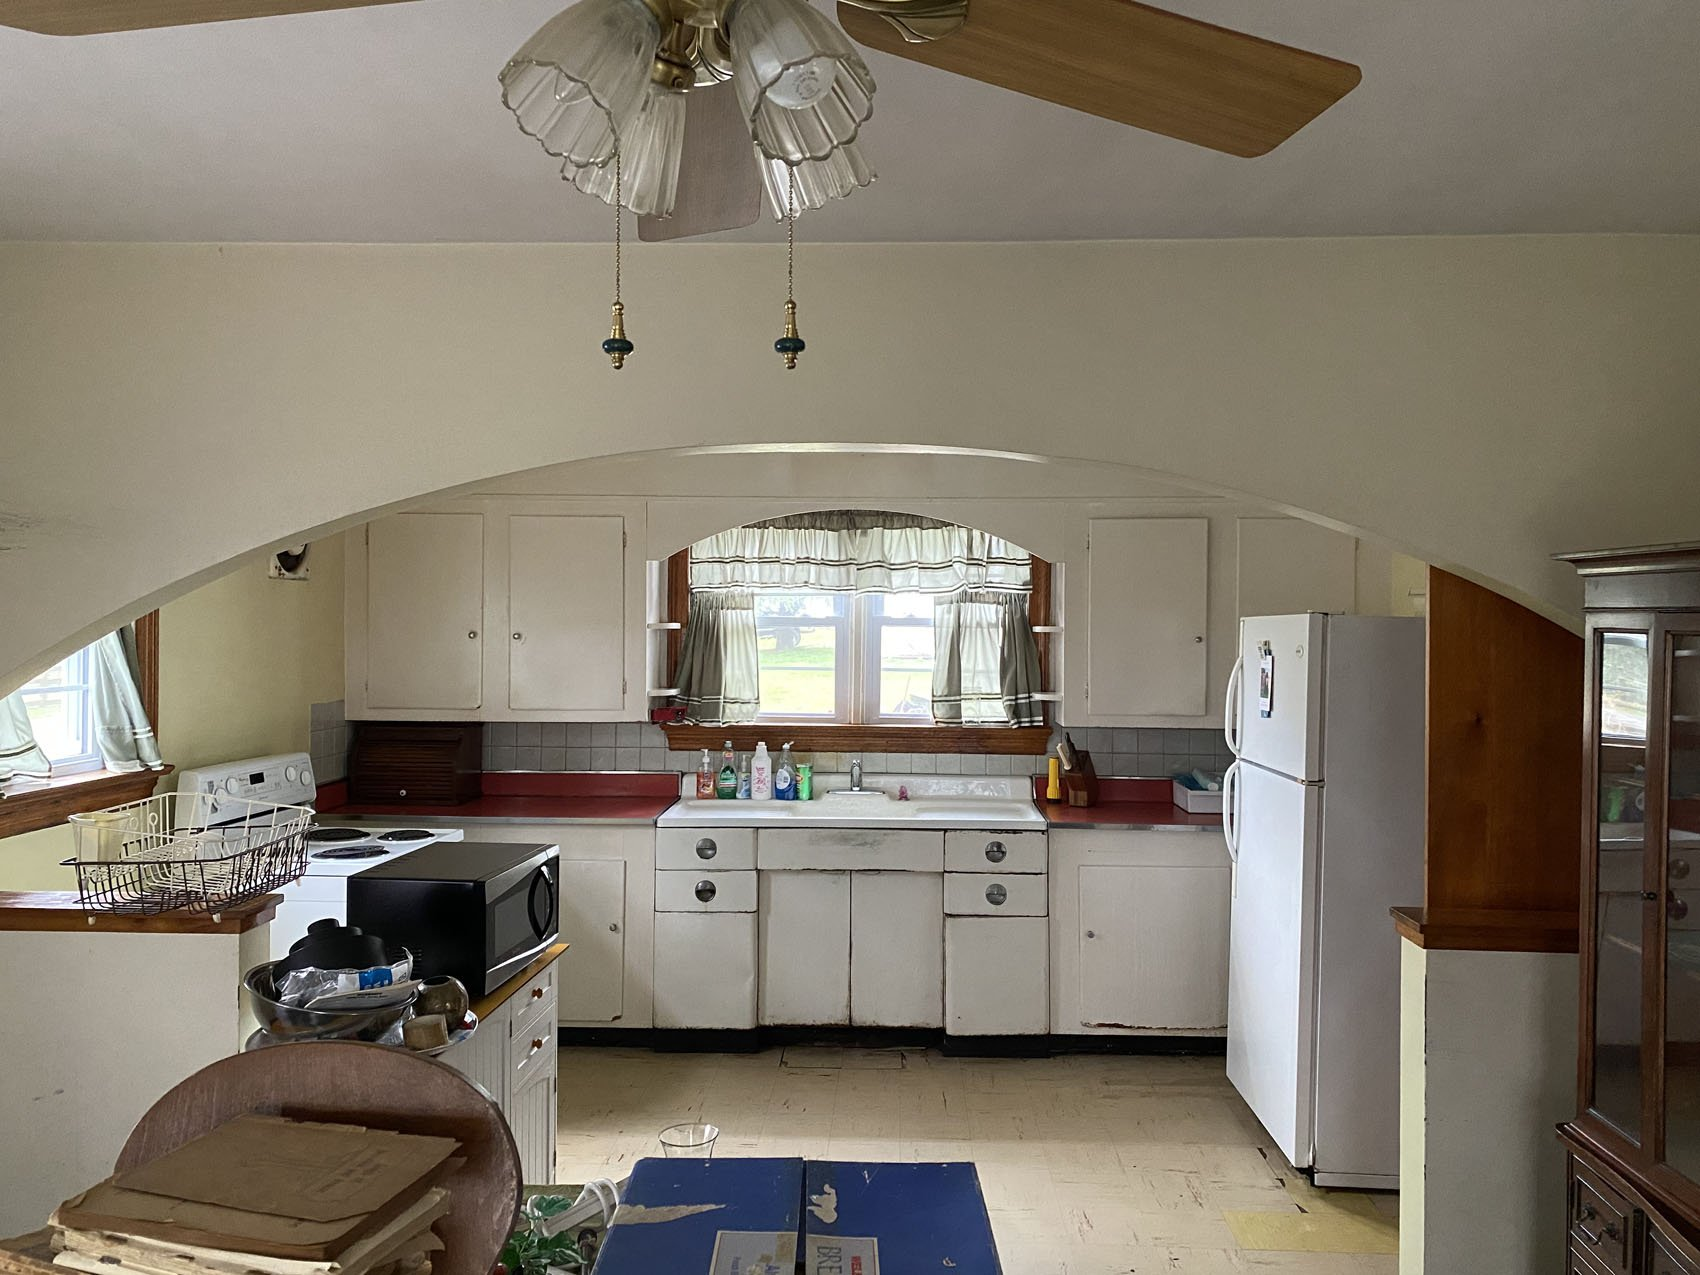 Before photos of 1960s outdated kitchen